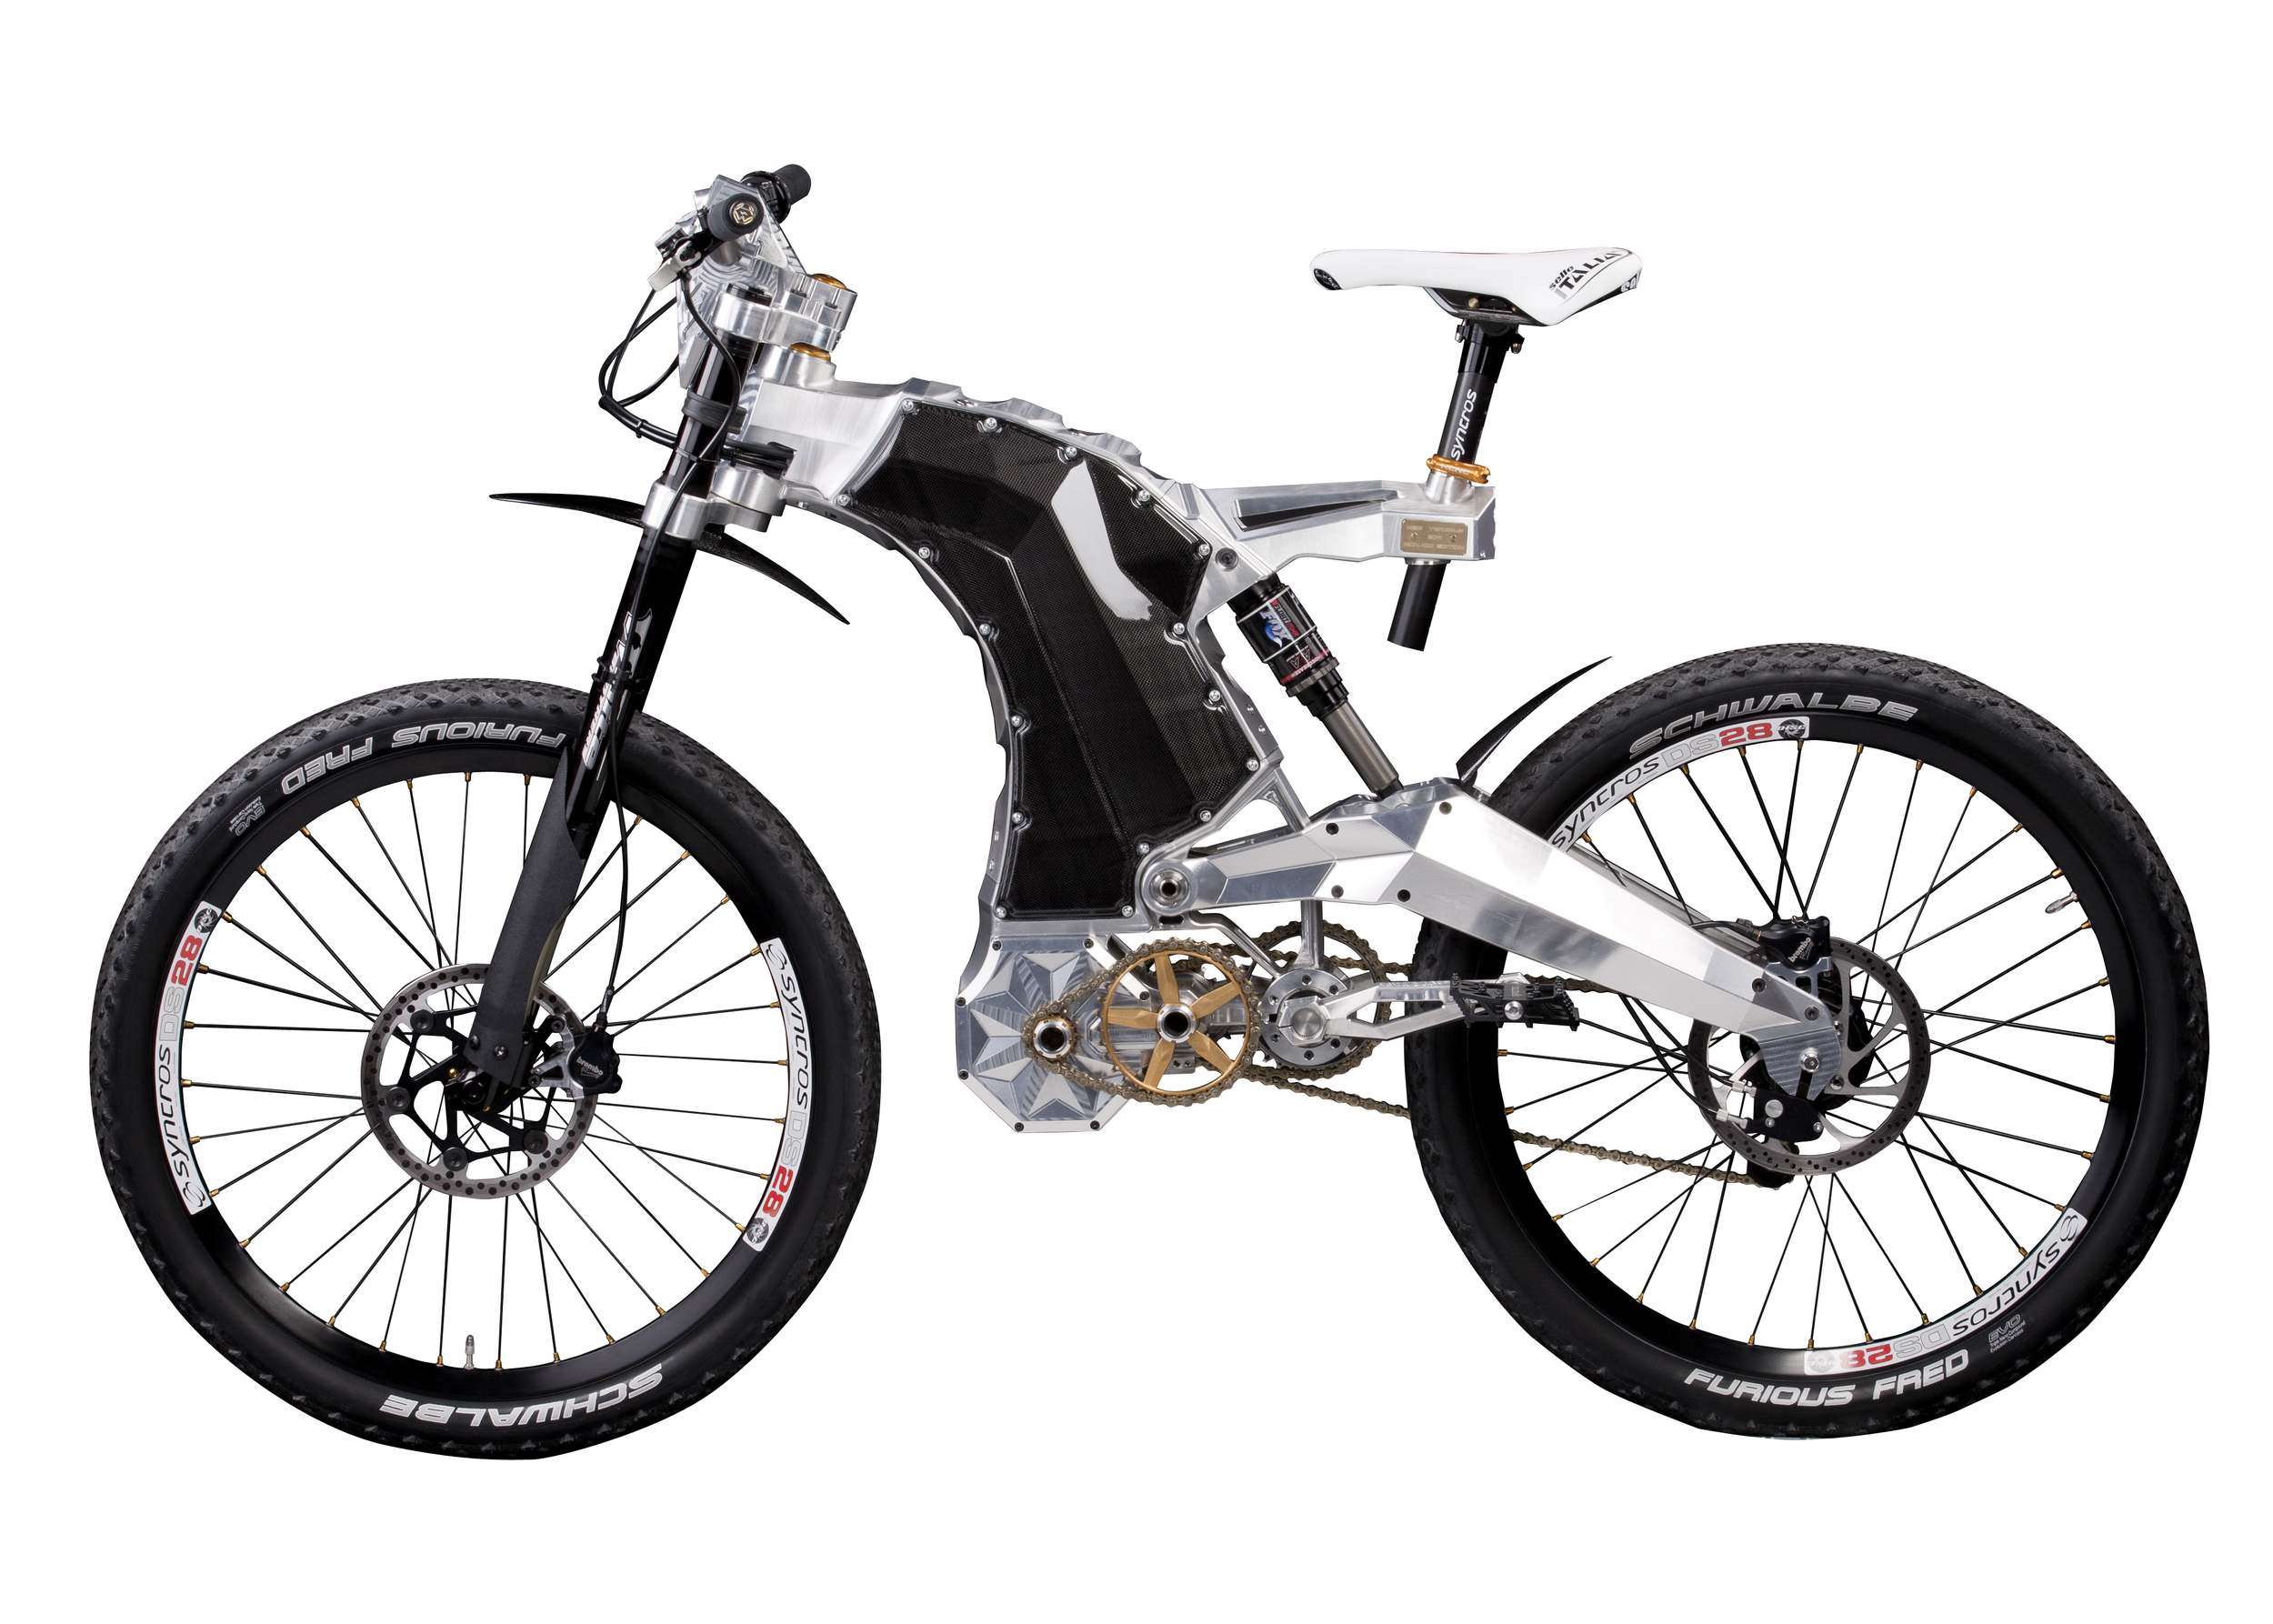 M55 TERMINUS - THE WORLD'S FASTEST ELECTRIC BICYCLE (video)